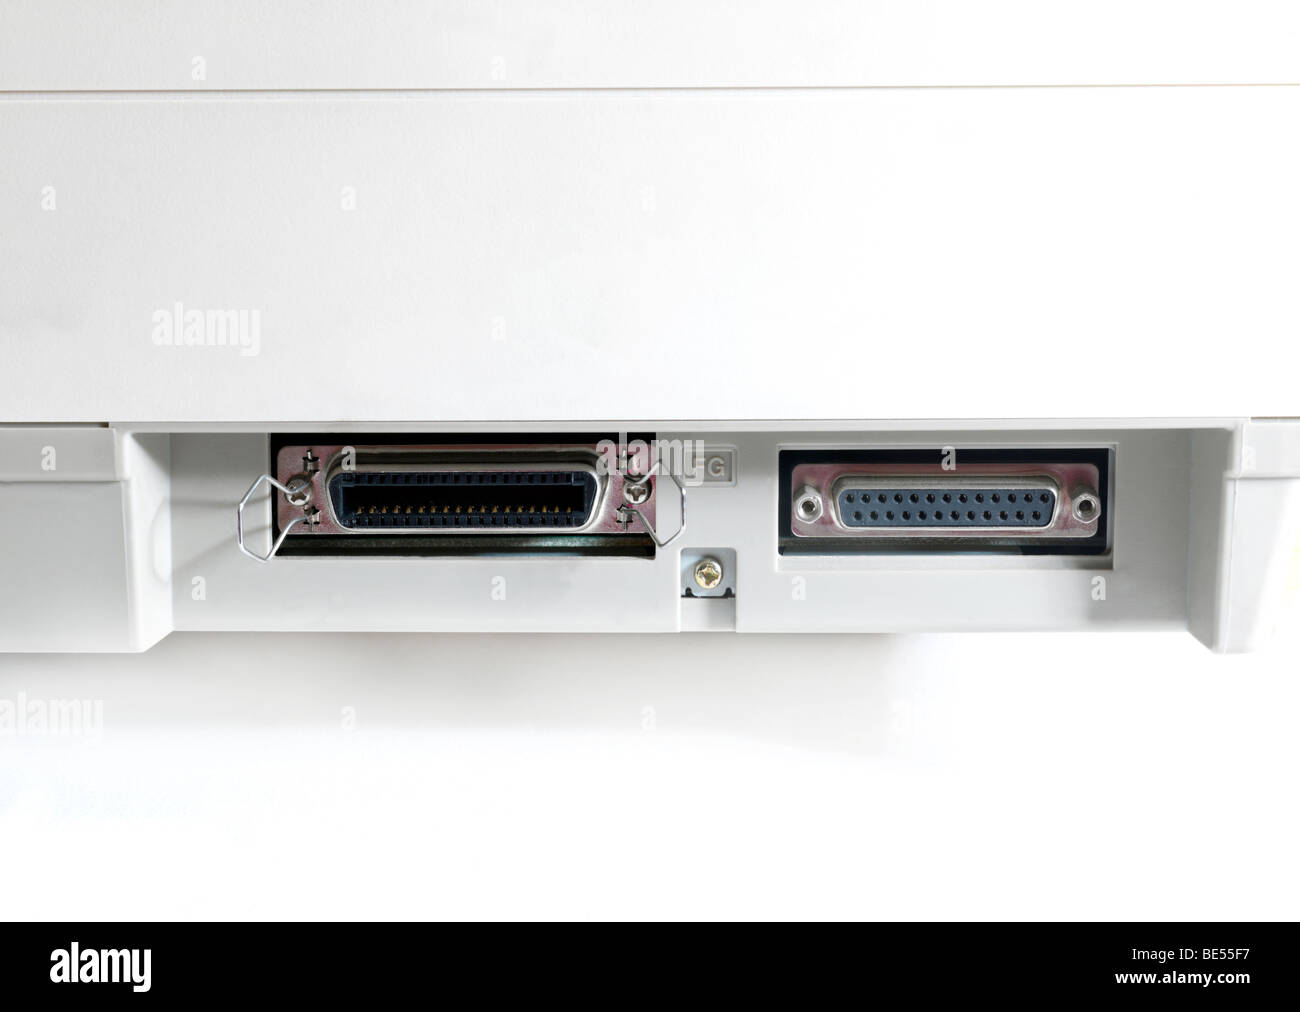 Parallel Ports on a Printer - Stock Image